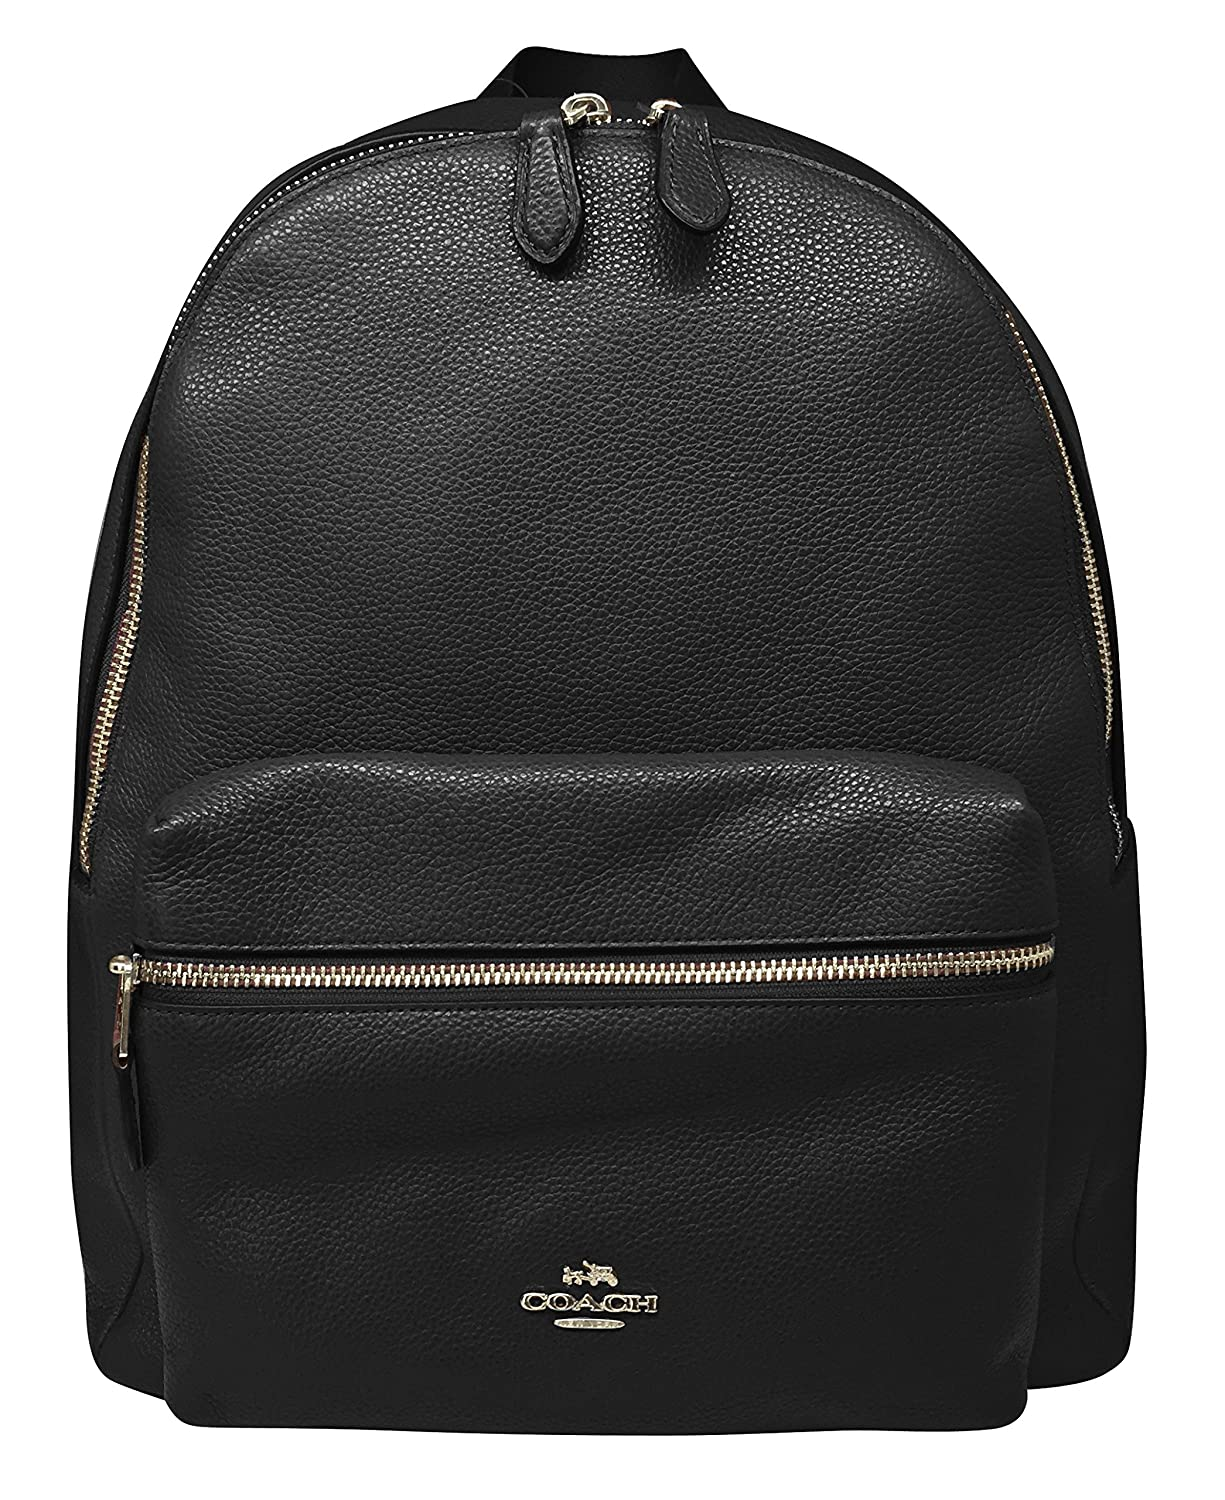 ca3eb7c900be Amazon.com  Coach Charlie Pebble Leather Backpack 17091  Shoes